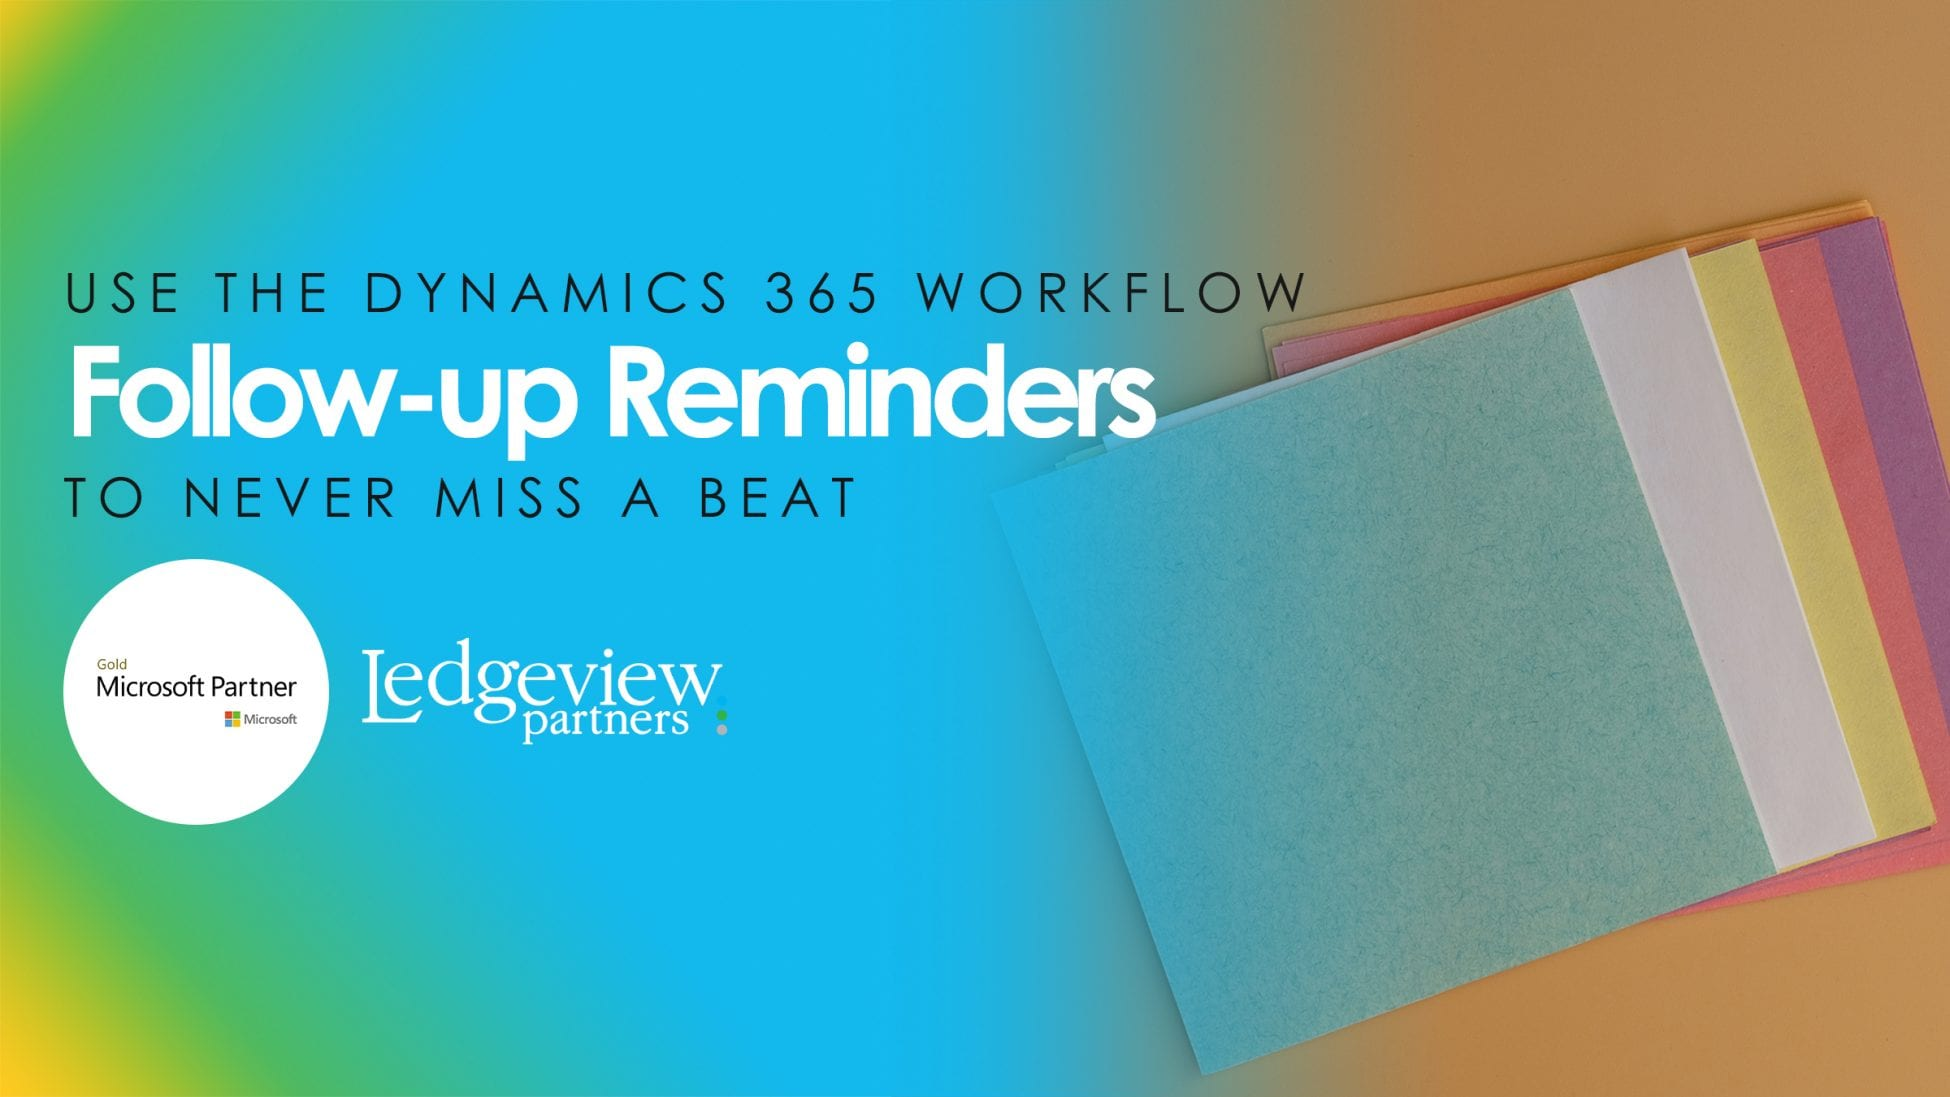 Use the Dynamics 365 Workflow Follow-up Reminders to Never Miss a Beat